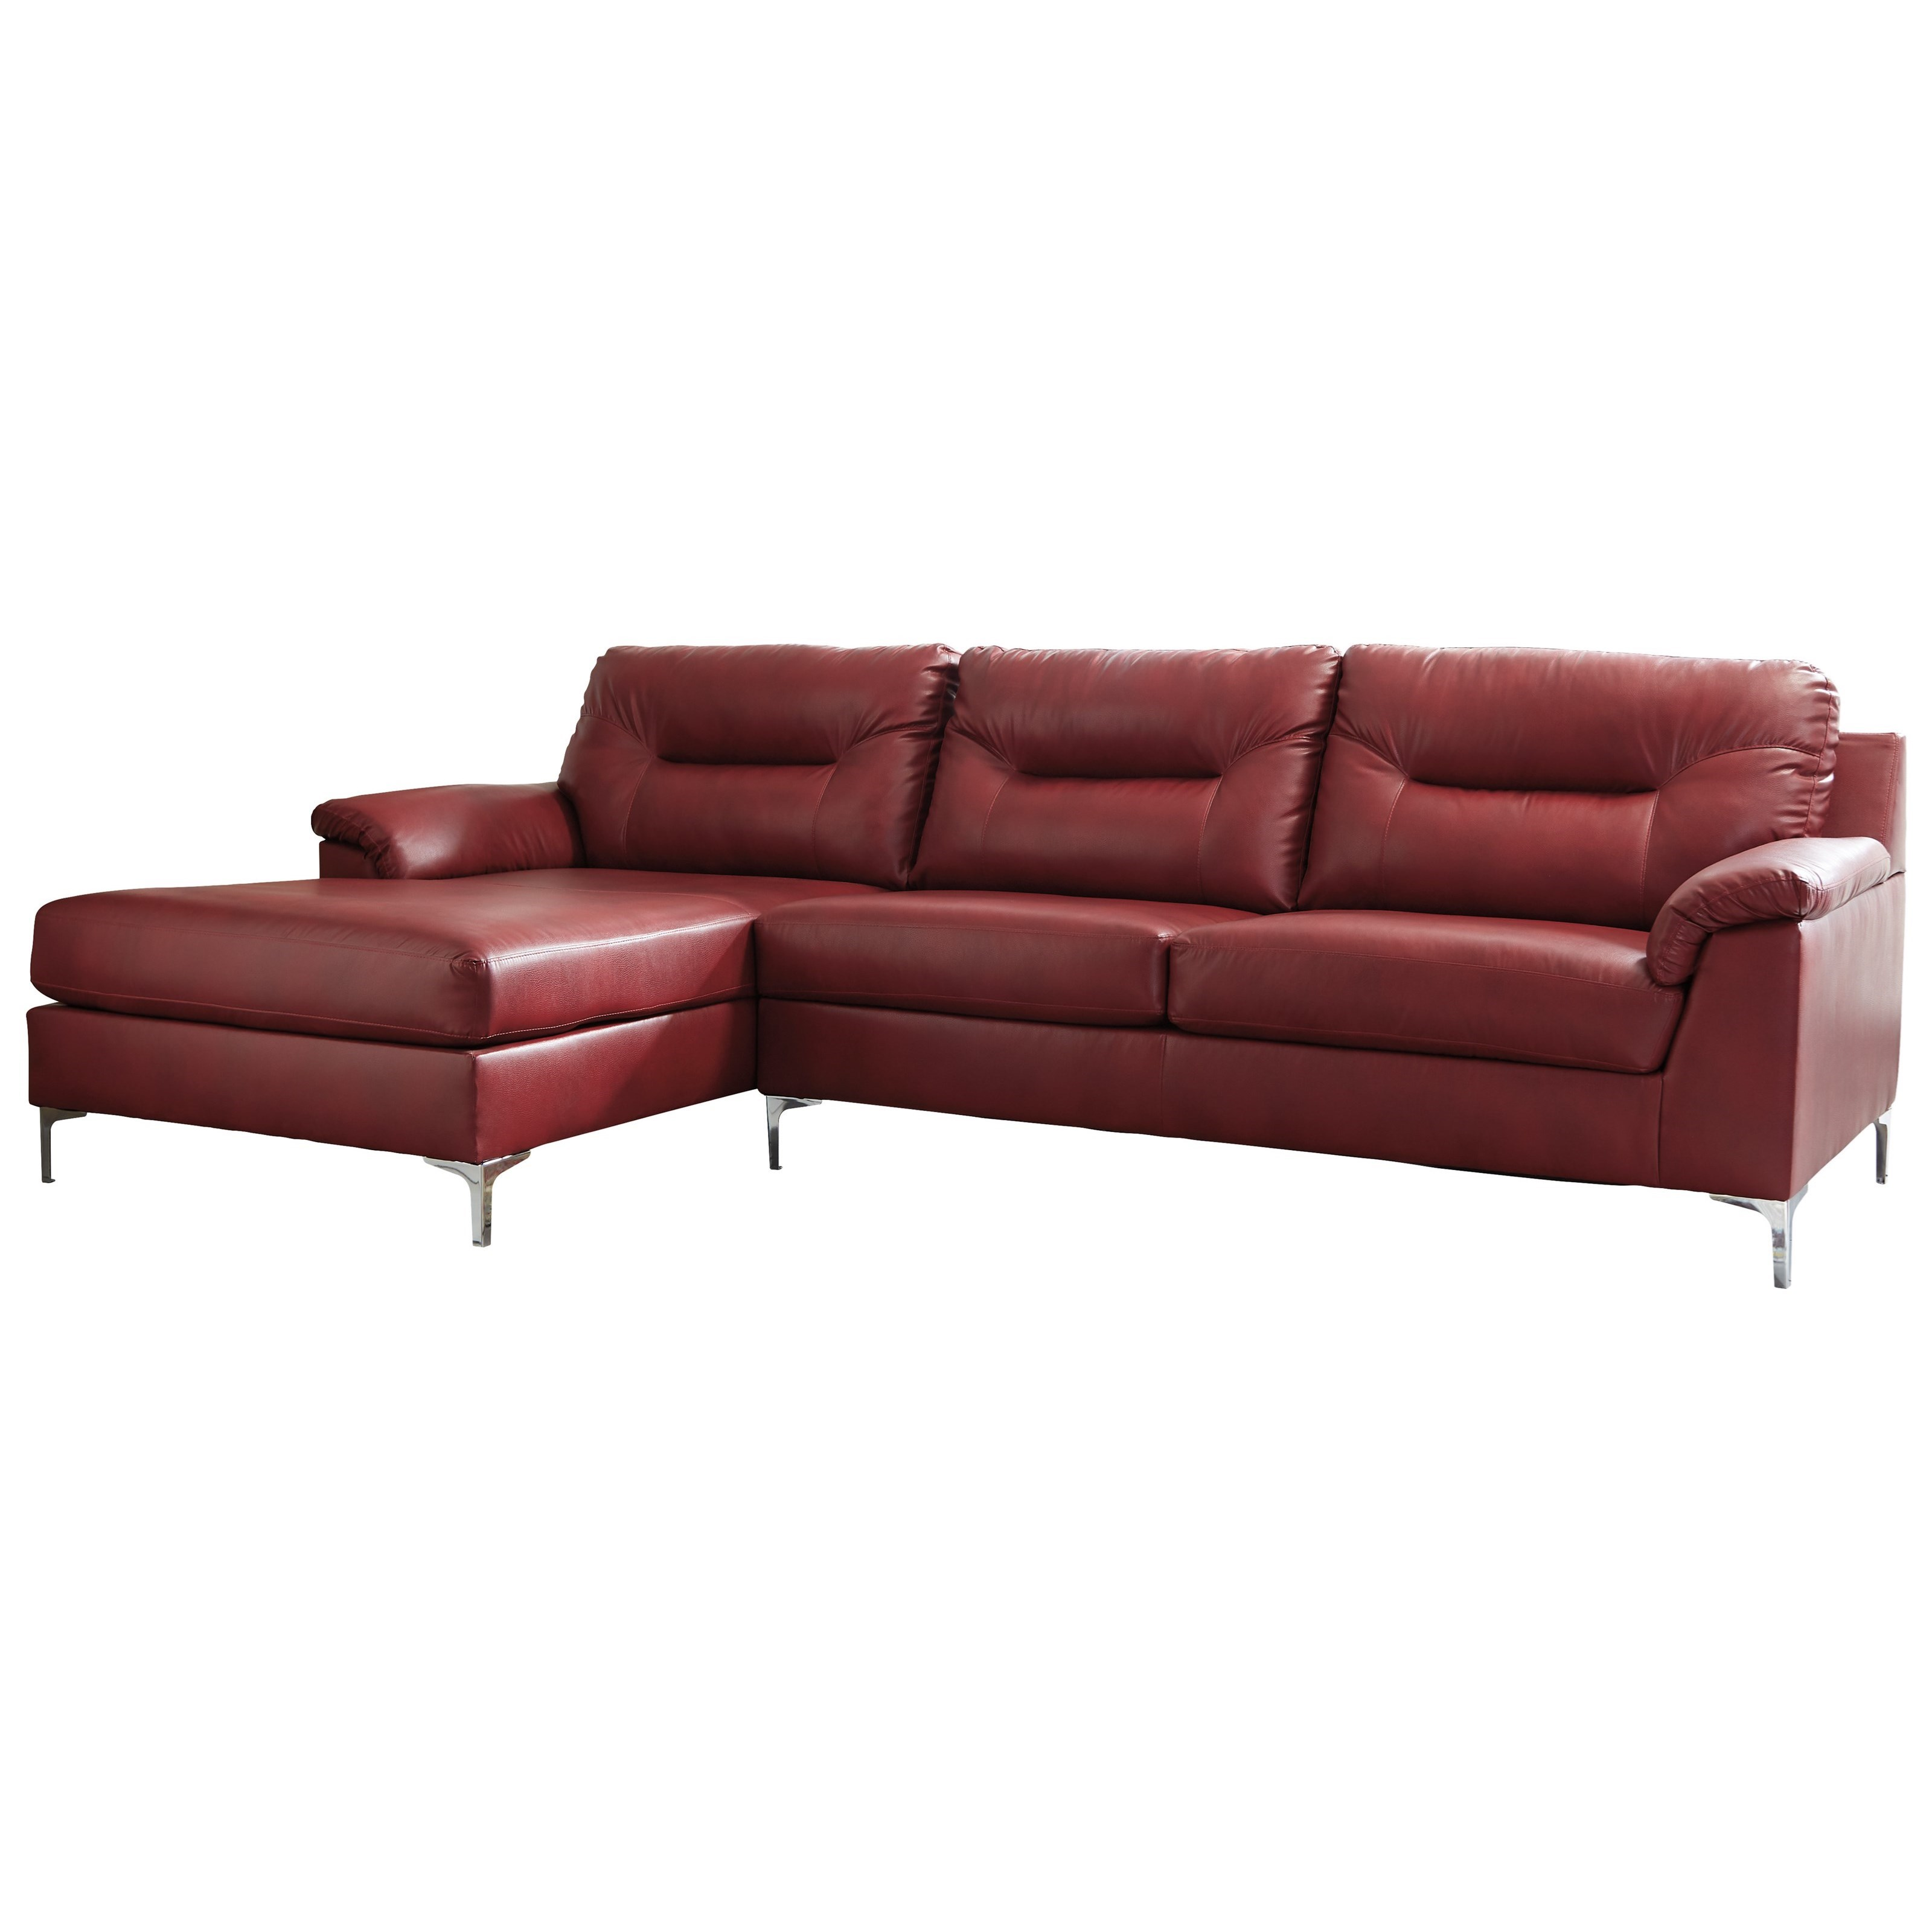 Signature Design by Ashley Tensas Sectional - Item Number: 3960316+67